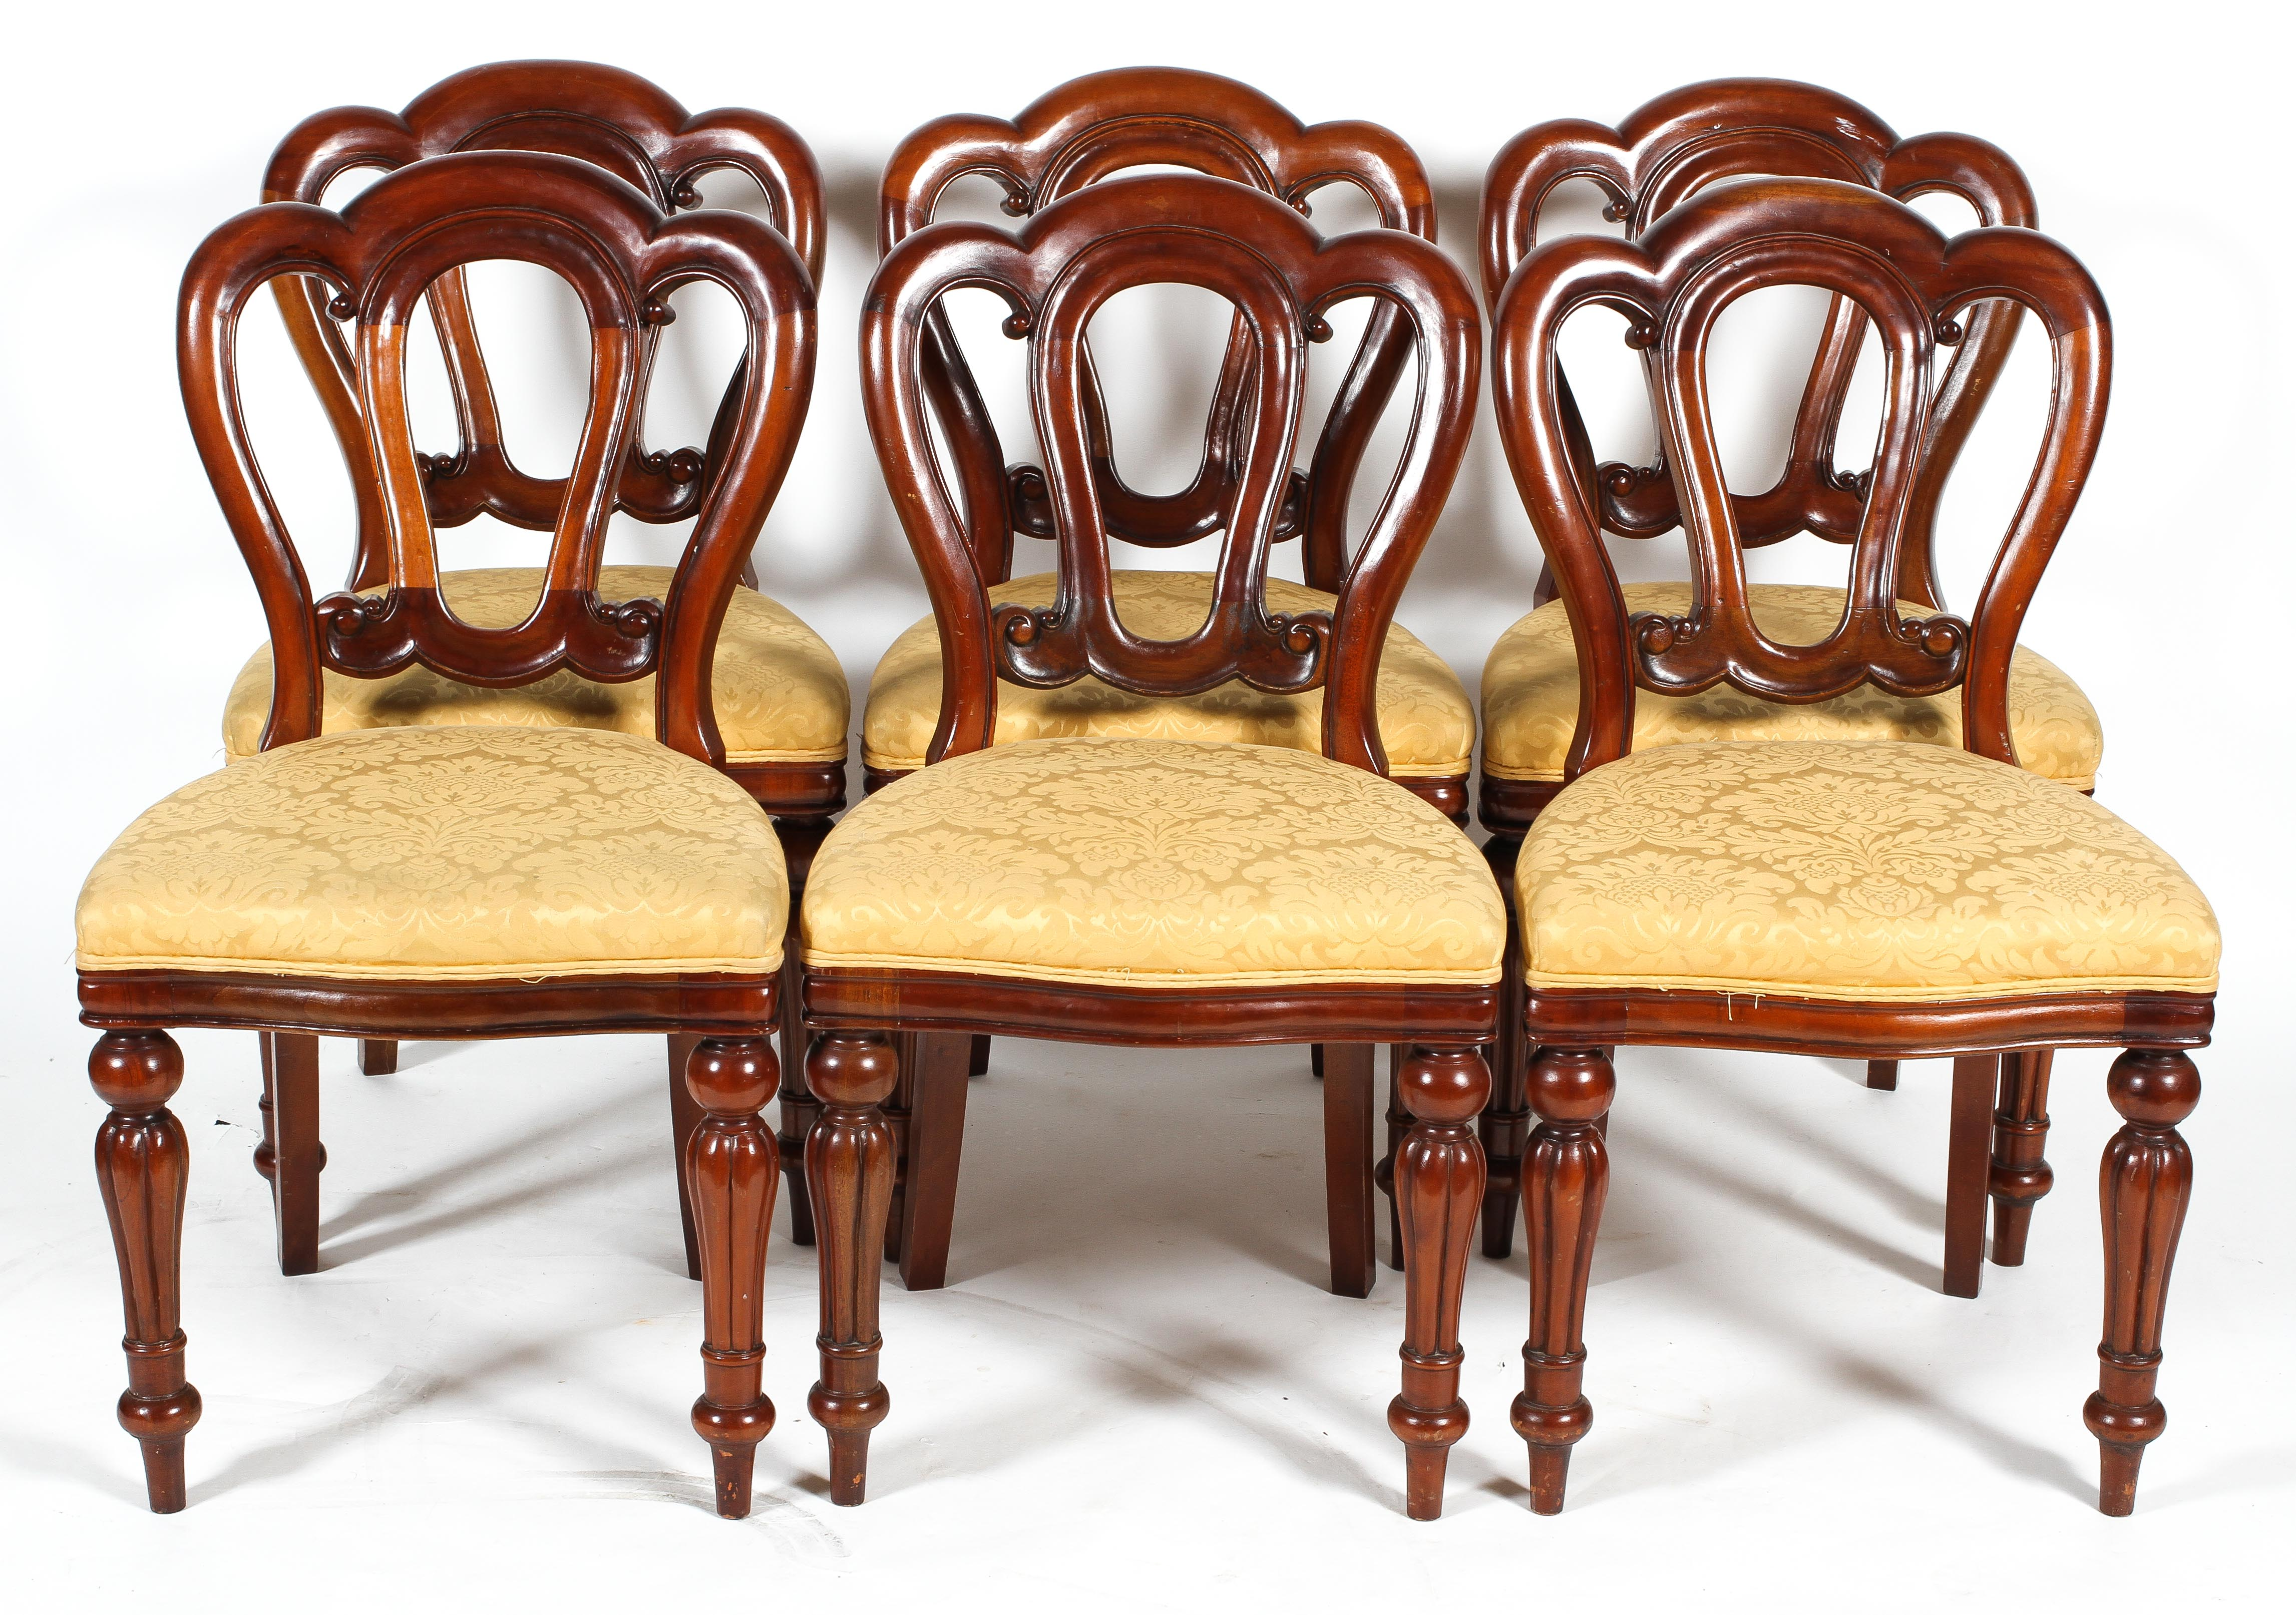 A set of six Victorian style mahogany balloon back dining chairs, with triple arched backs,